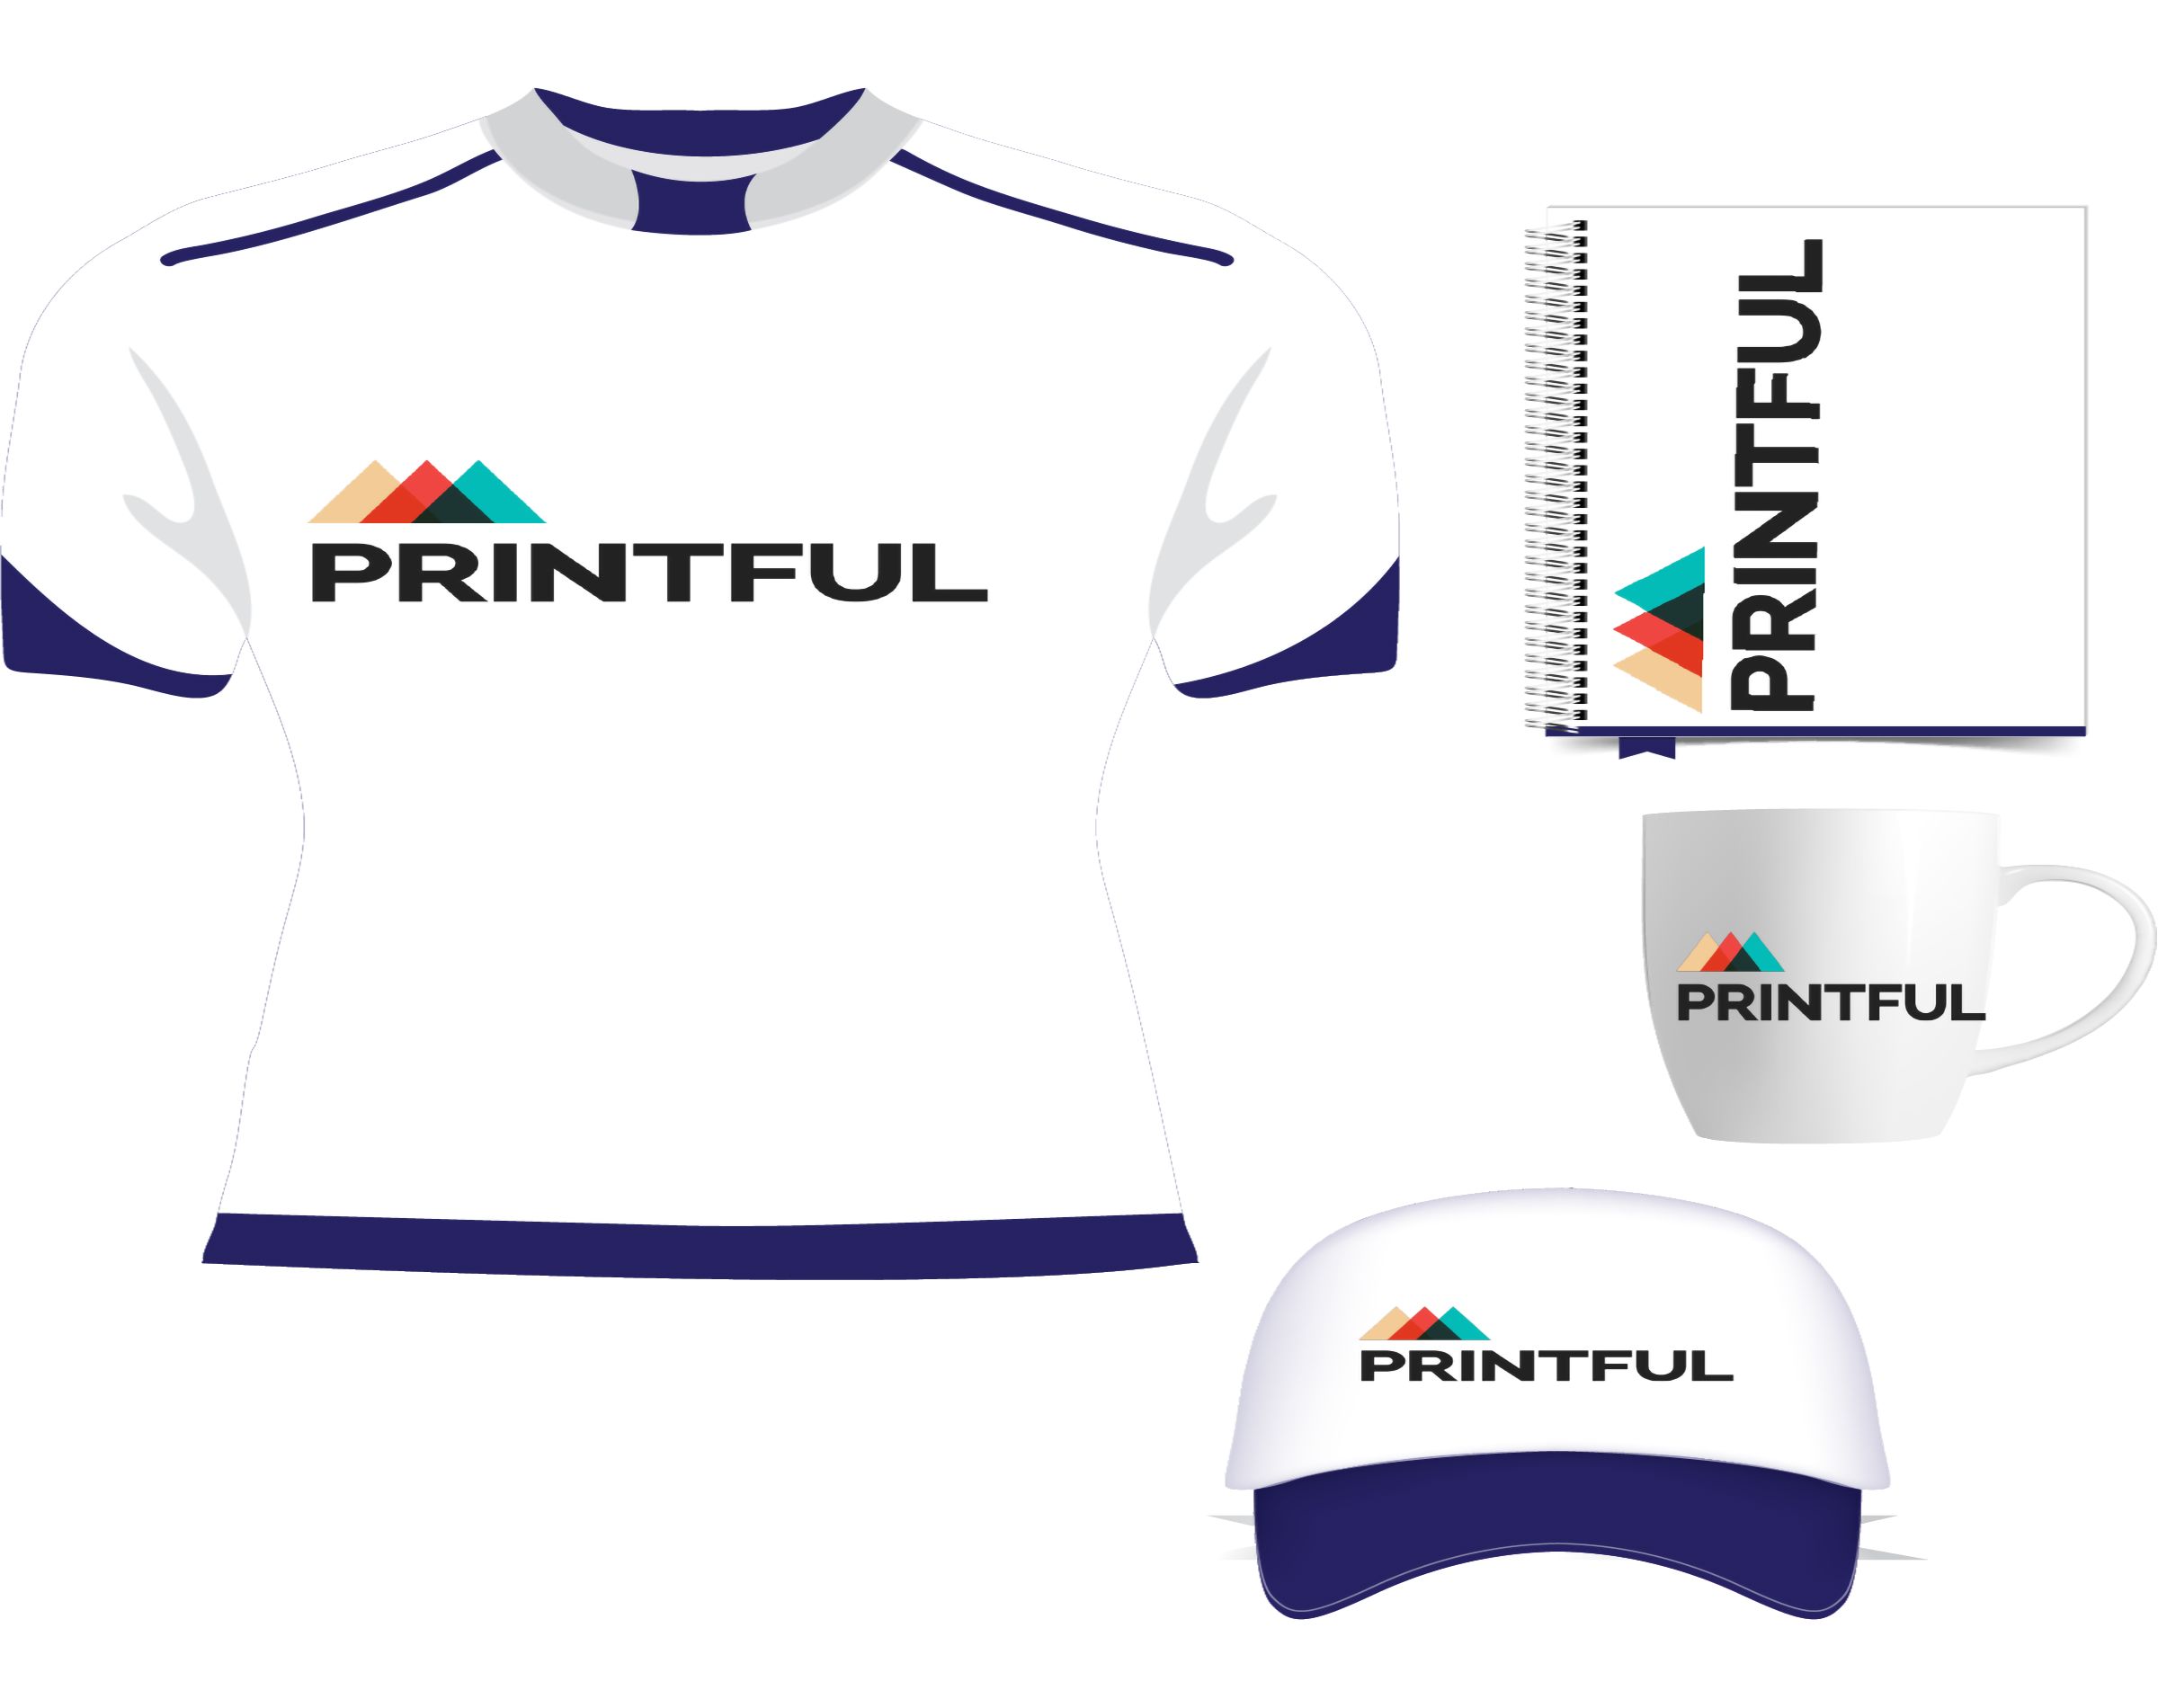 How to sell custom printed products with Printful